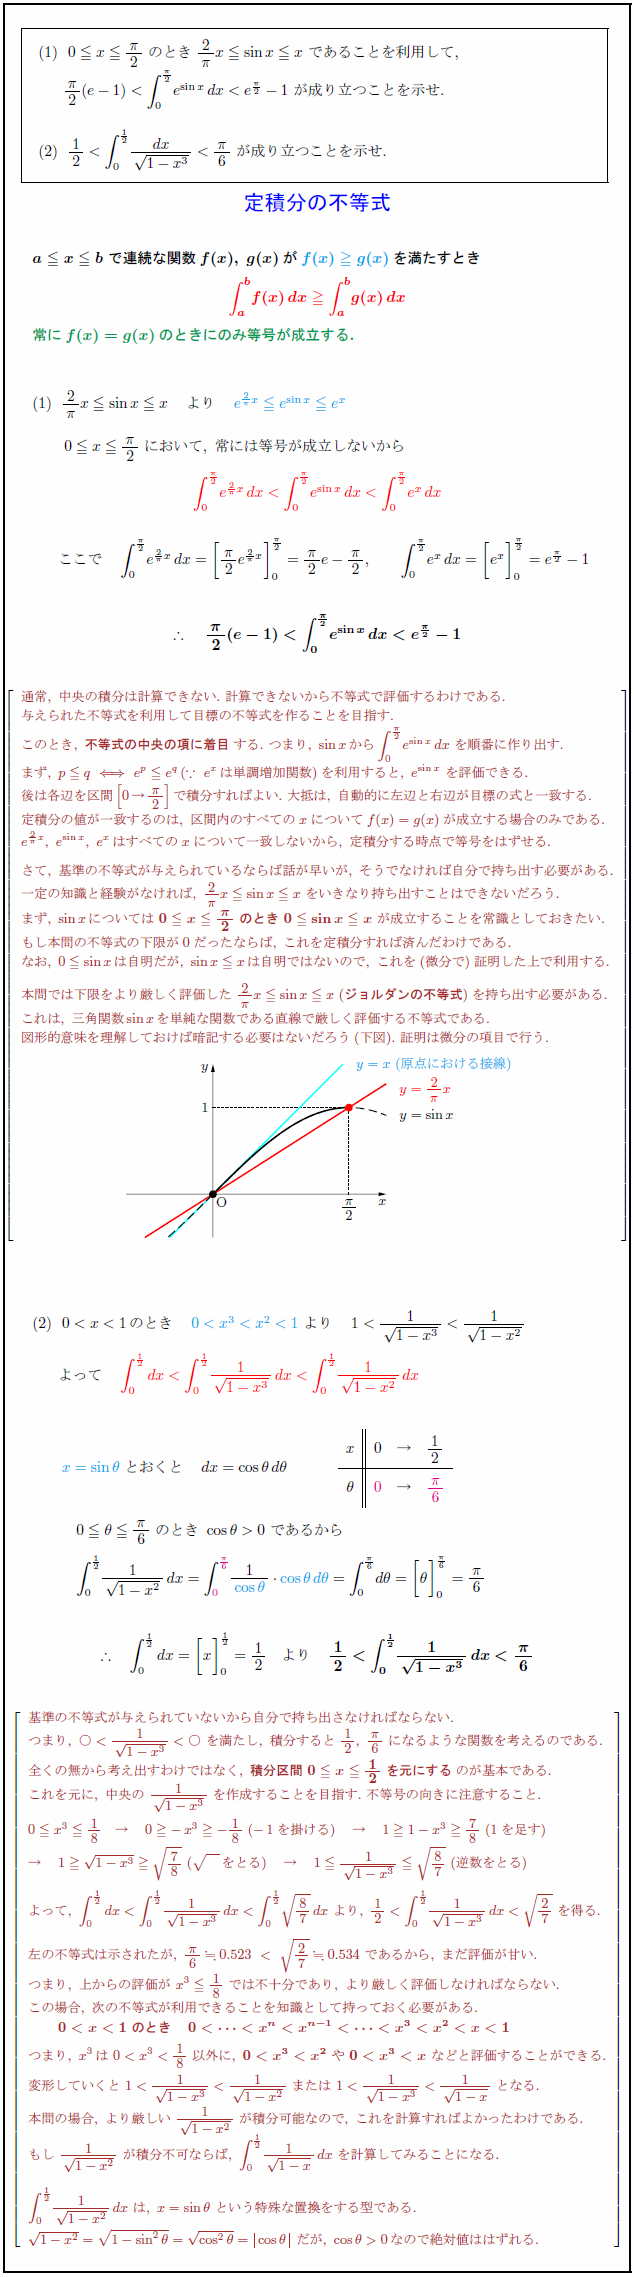 definite-integral-inequality